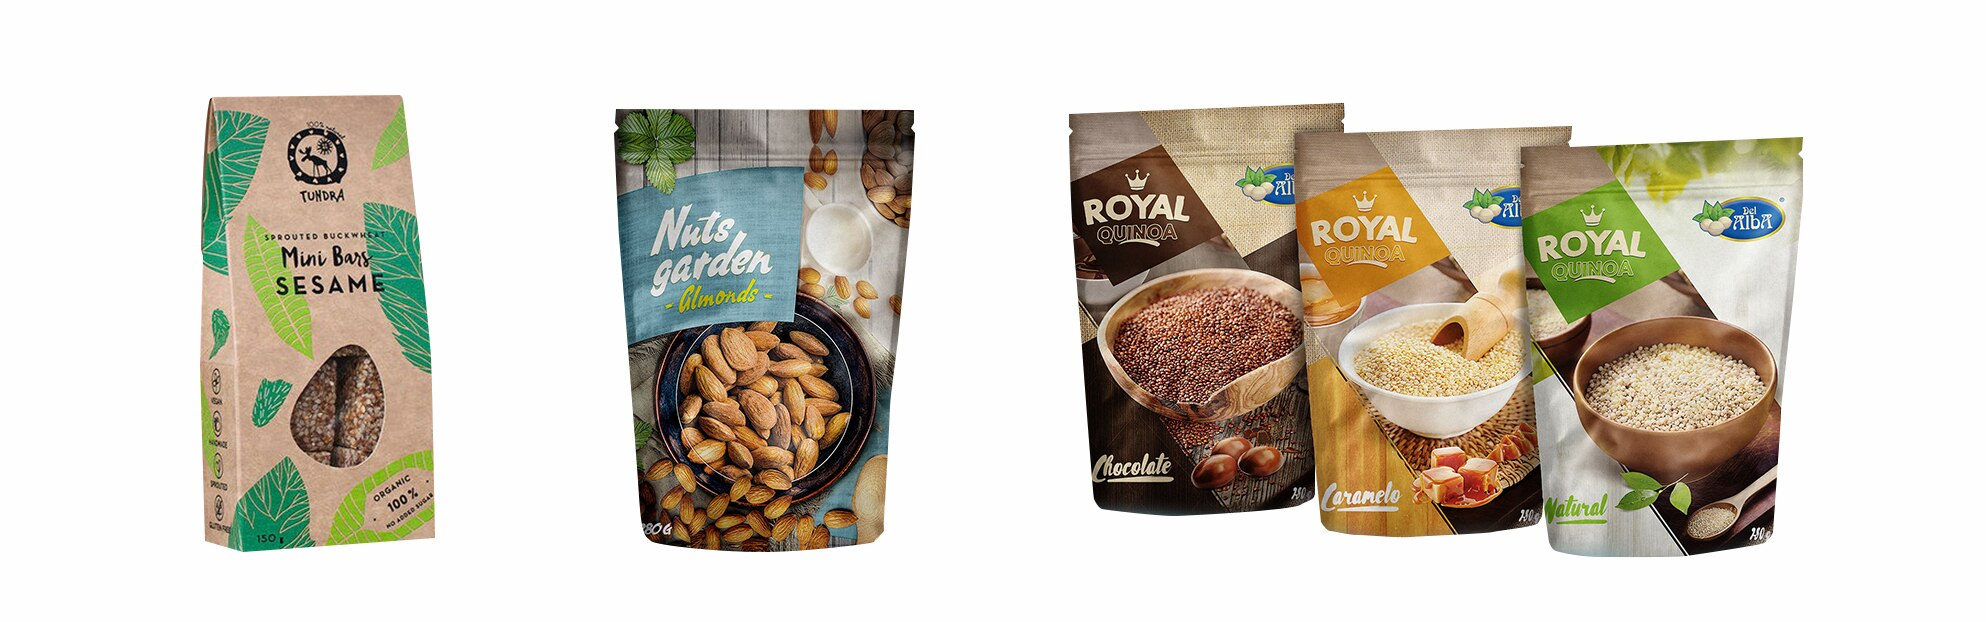 stand-up-bags-and-box-packaging-for-almonds-and-quinoa-foods.jpg